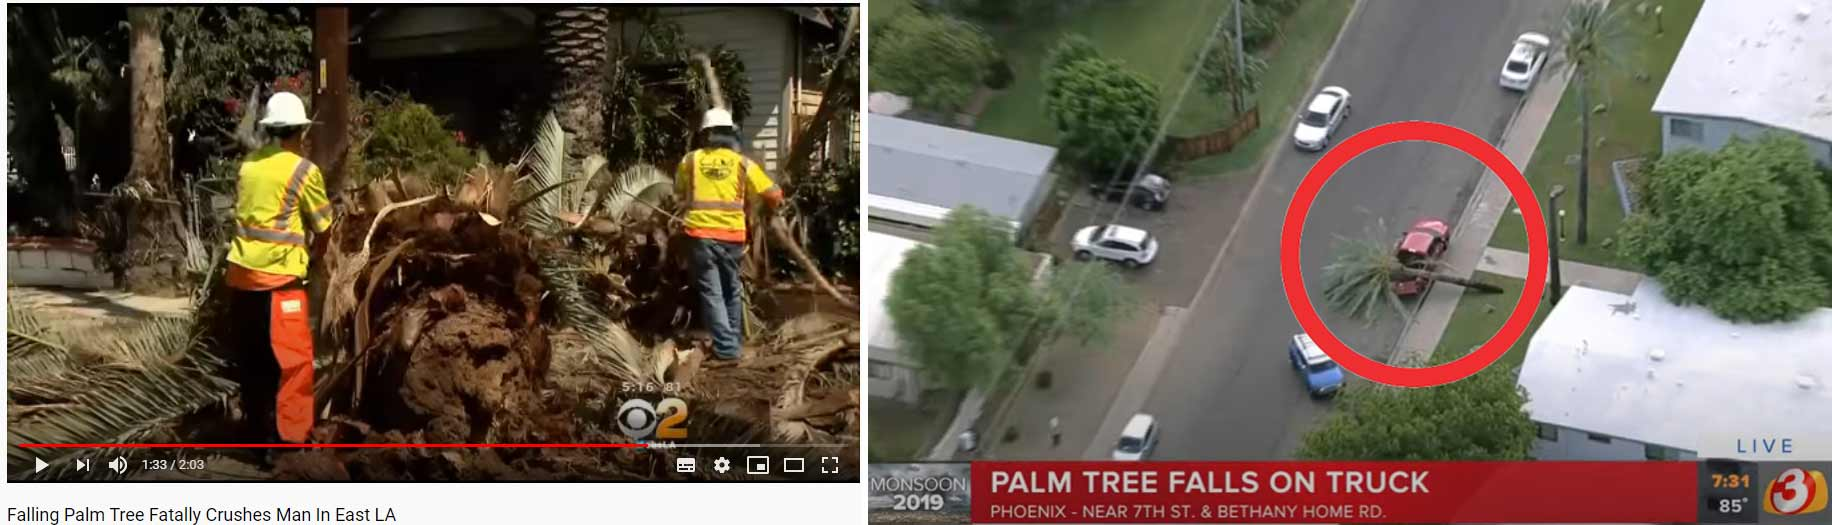 Falling-Palm-Tree-FatallY-Crushes-Man-In-East-LA